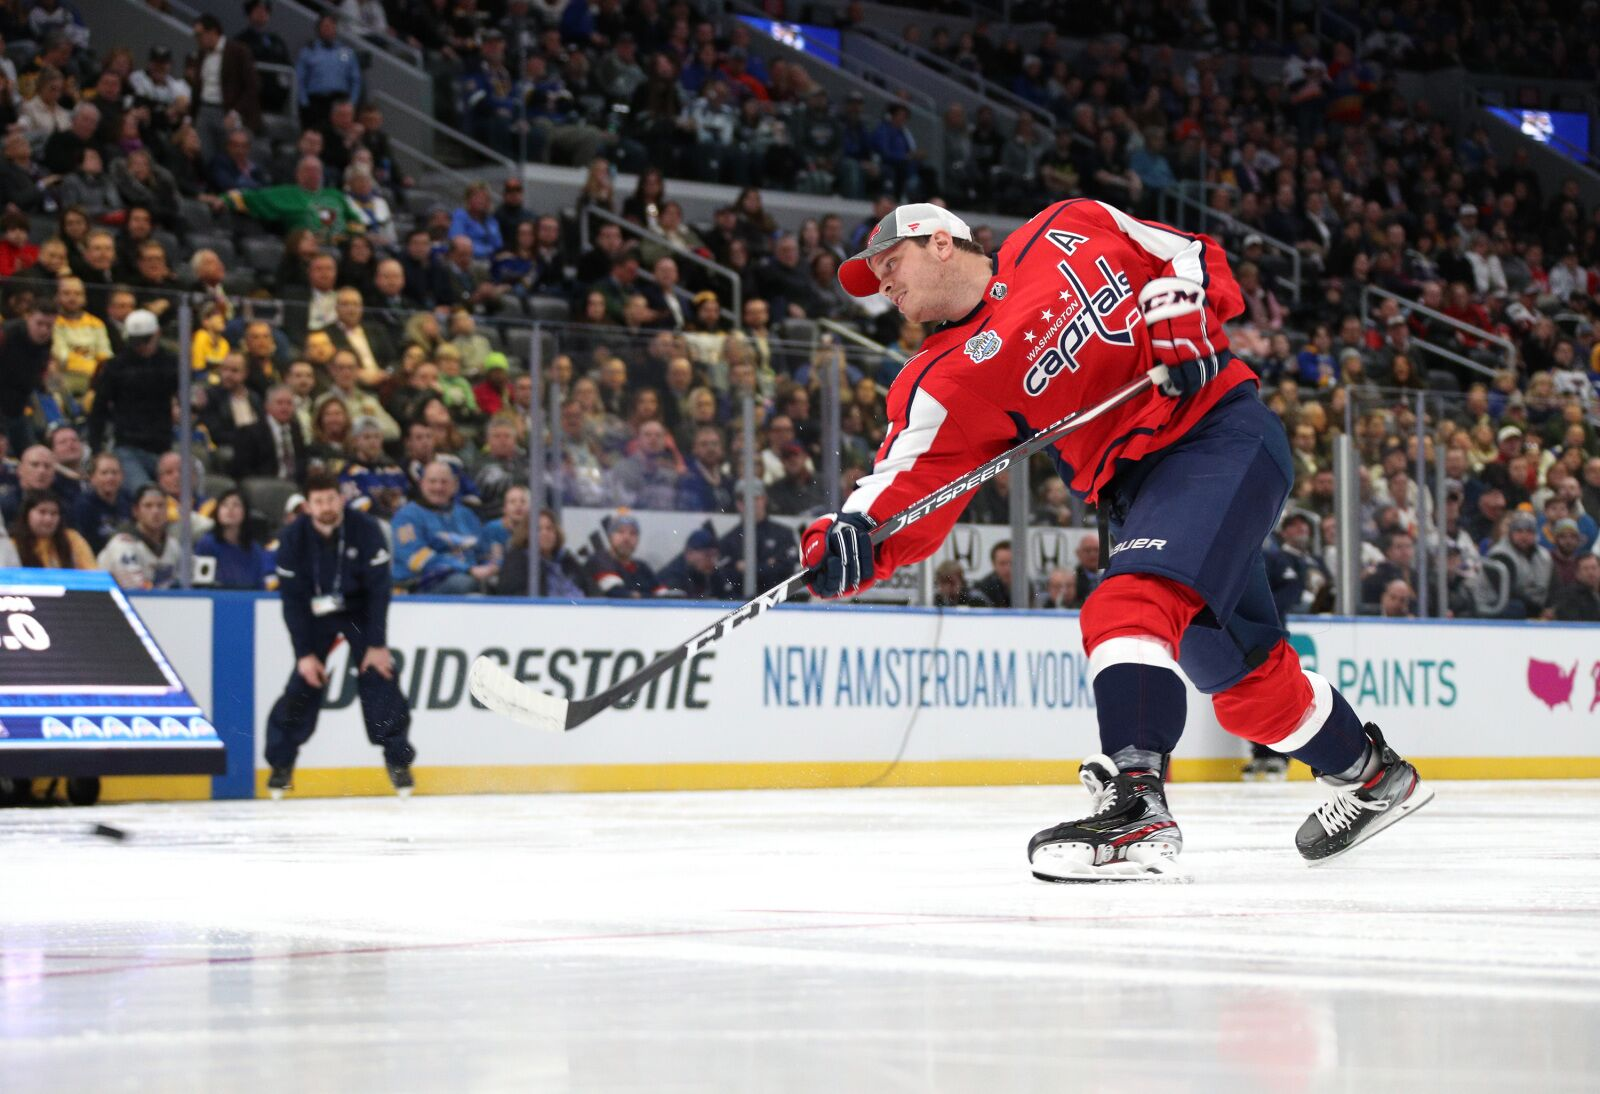 Capitals compete in NHL All Star Skills competition